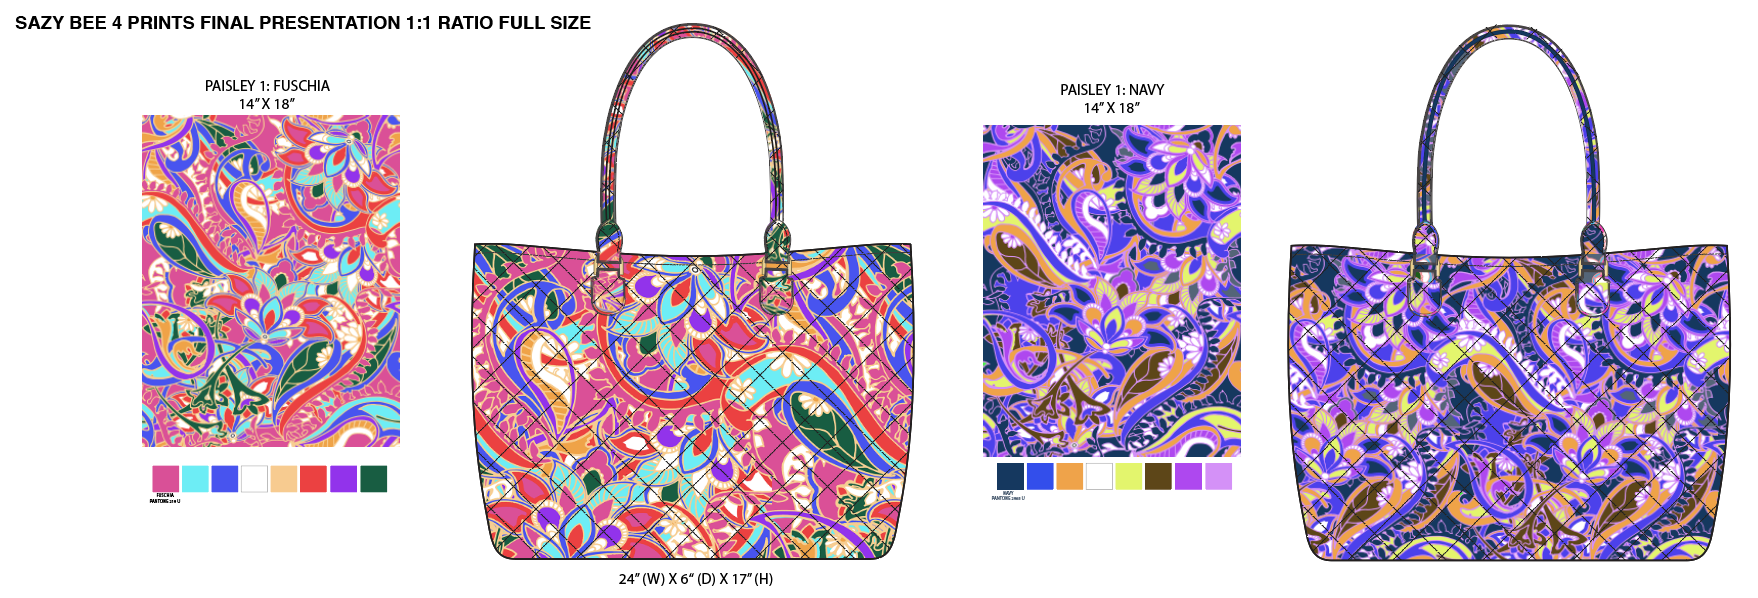 Paisley print on quilted cotton tote for Sazy Bee